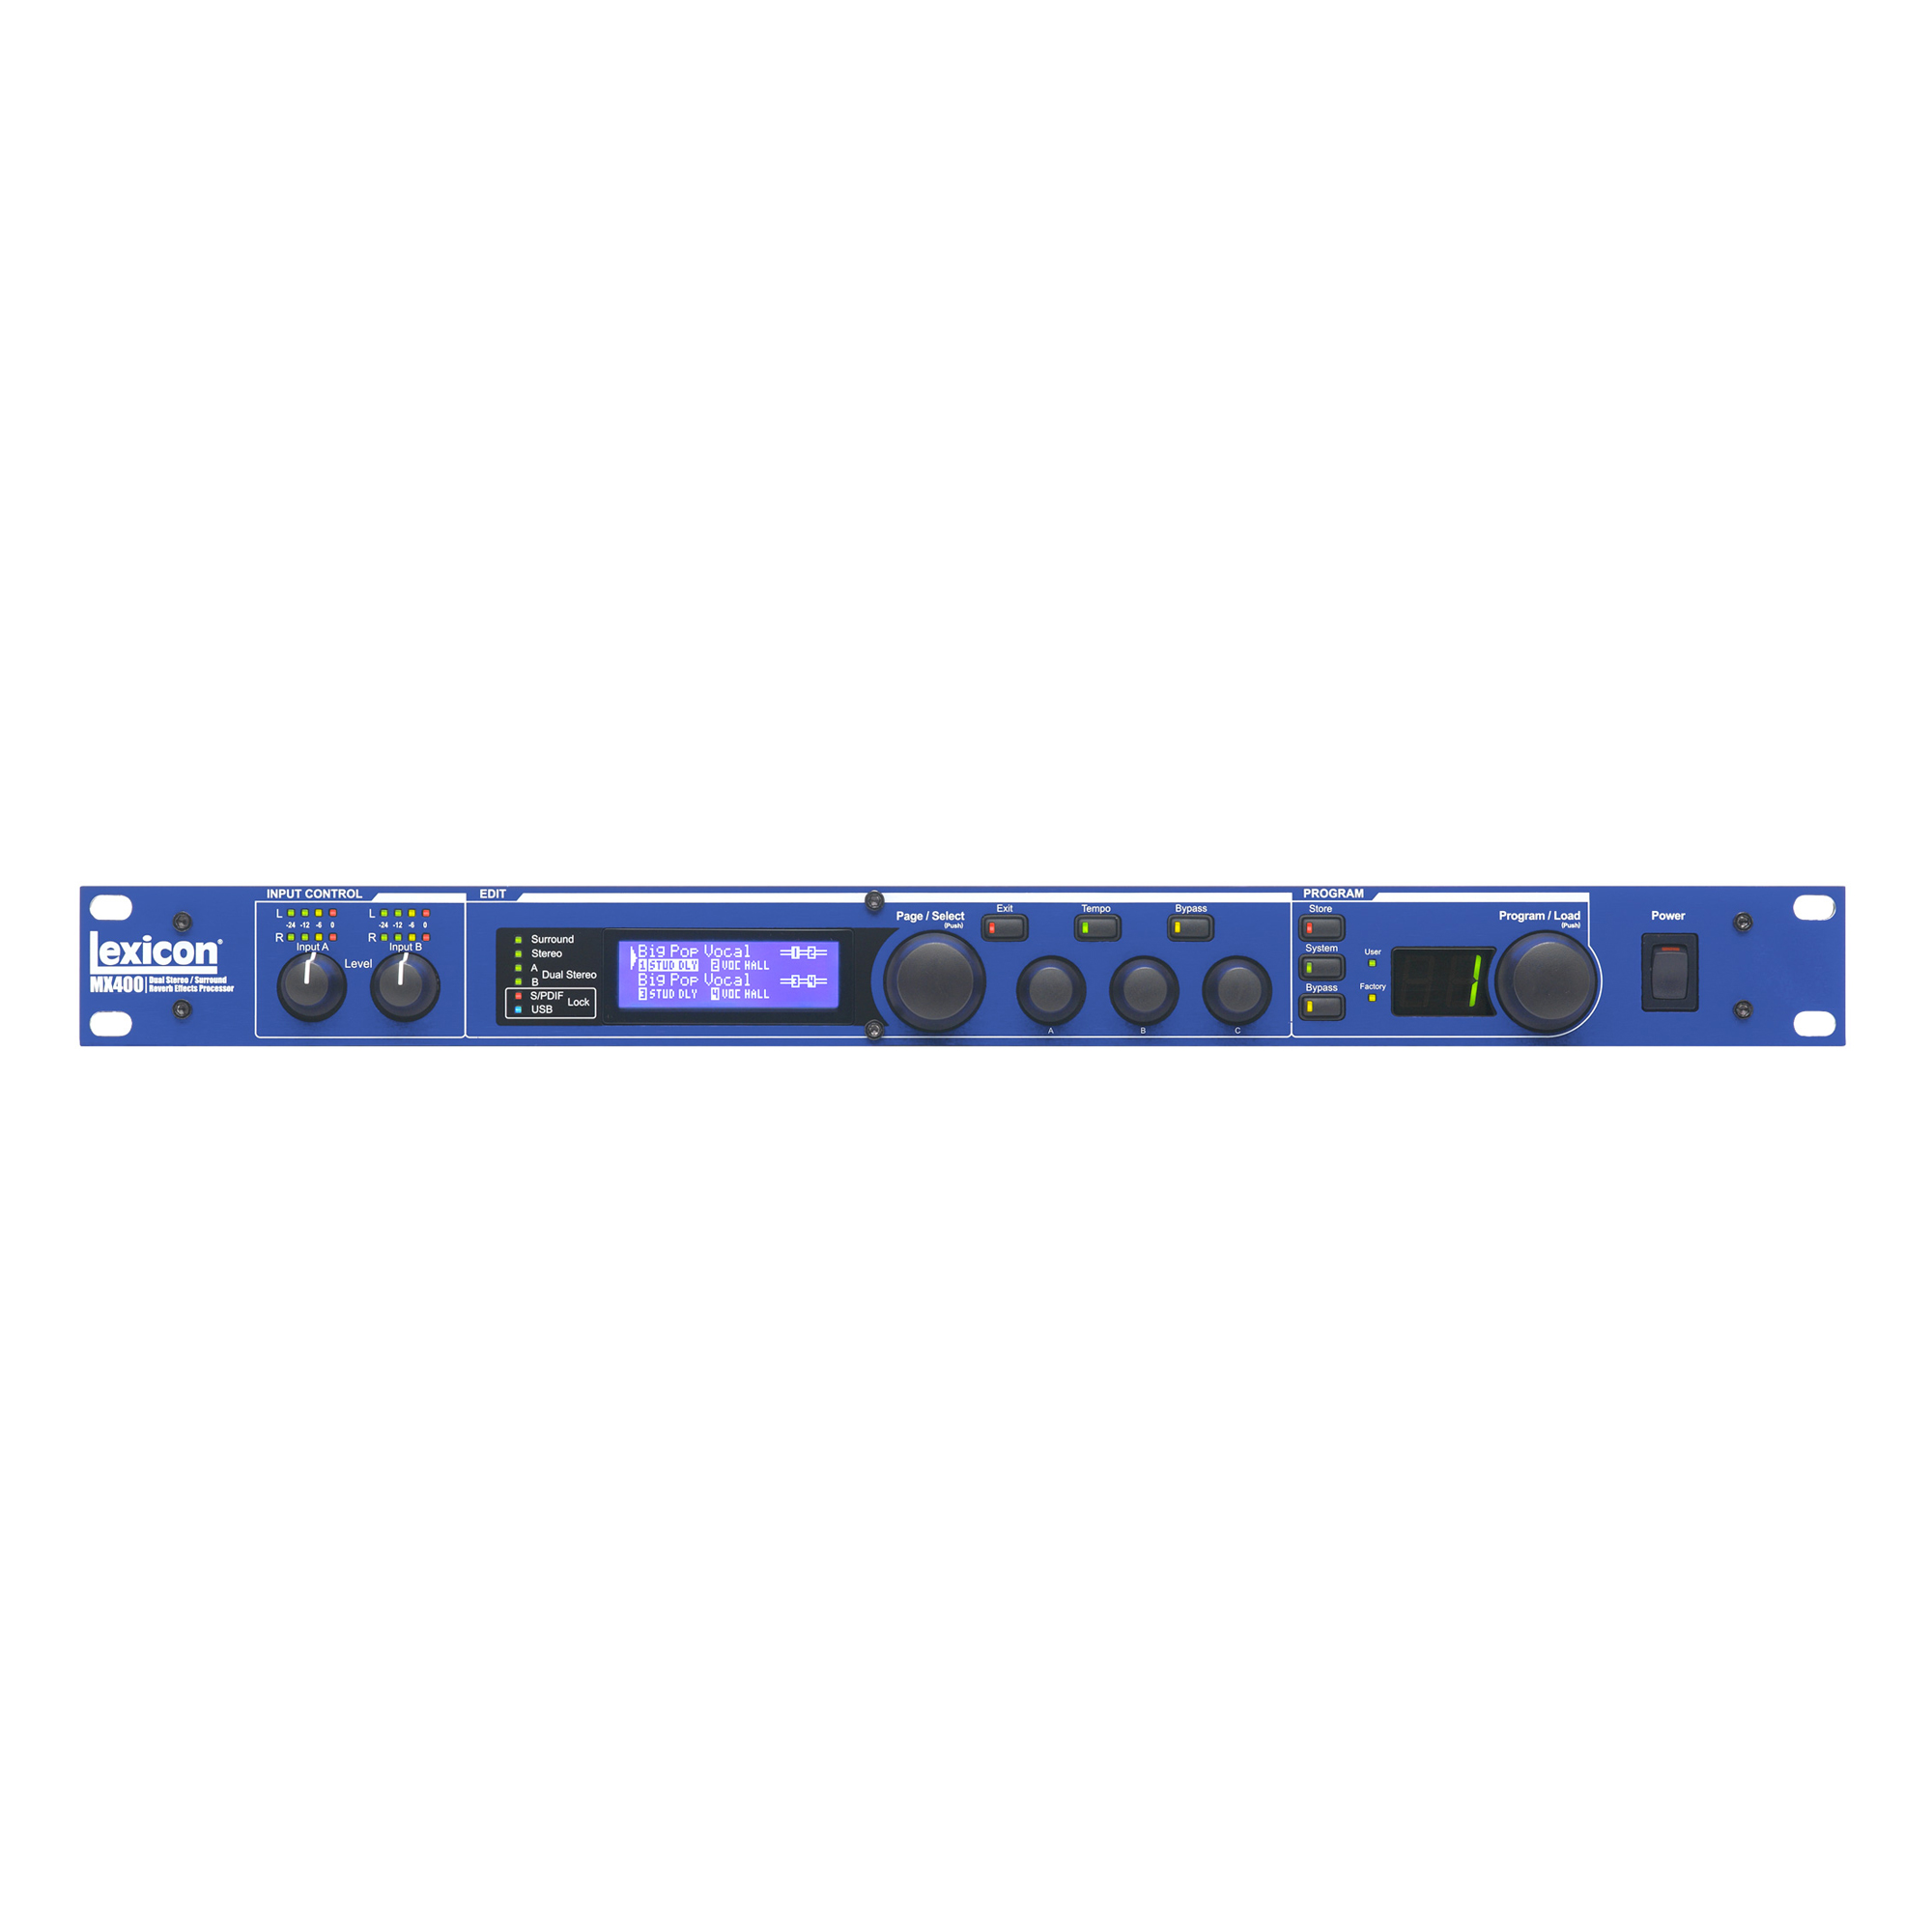 "4-in/4-out Reverb/Effects Processor with USB ""Hardware Plug-In"" Capability"